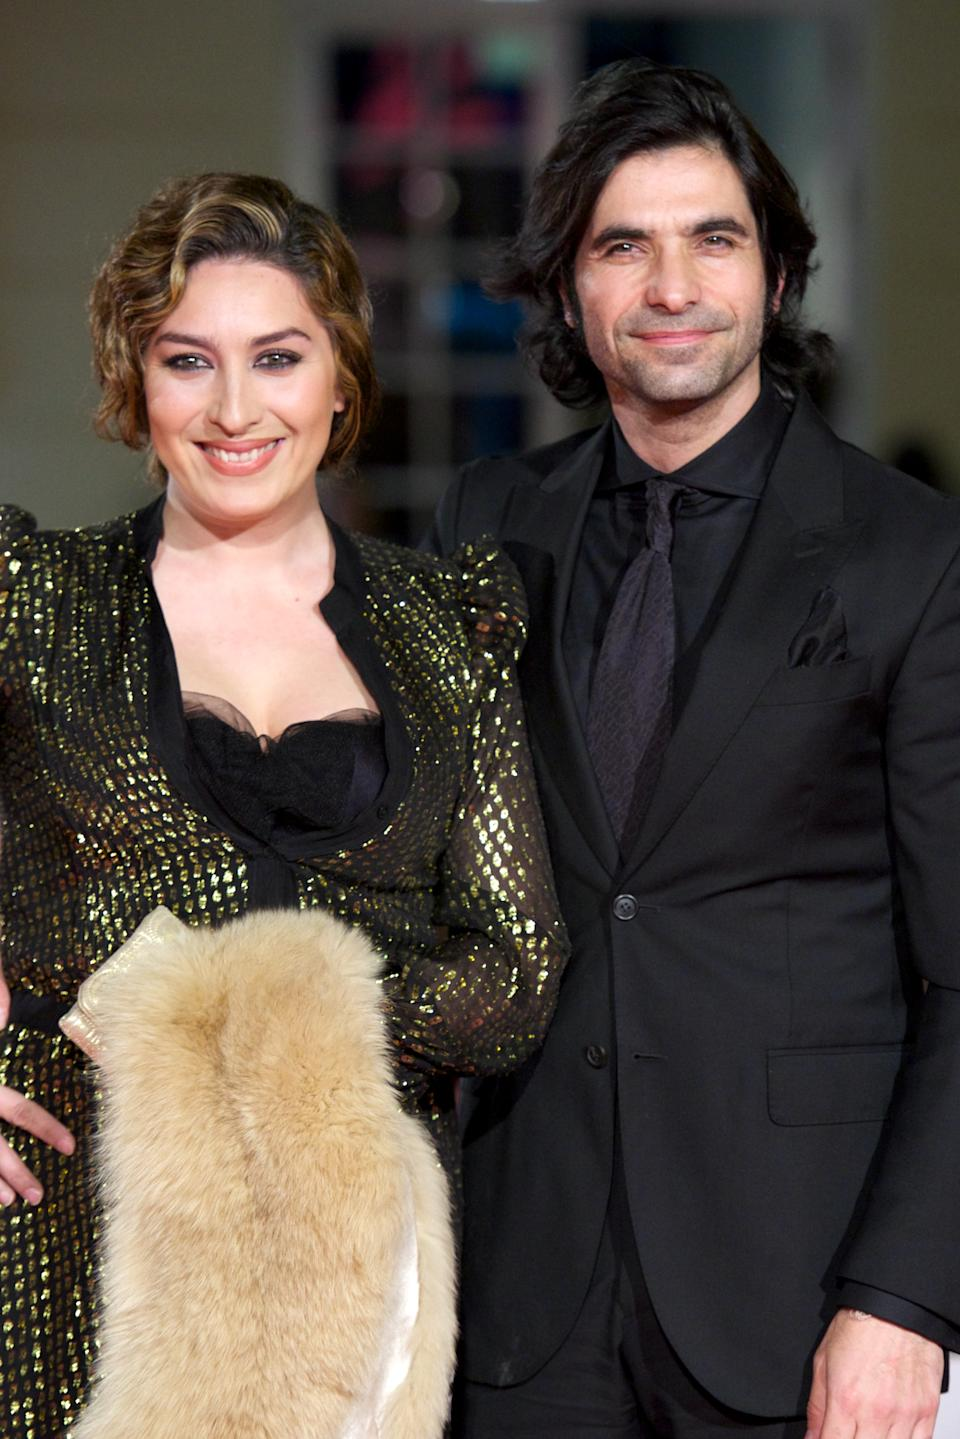 """MALAGA, SPAIN - MARCH 25:  Spanish singer Estrella Morente and Javier Conde attend the """"Dioses y Perros"""" premiere during the 17th Malaga Film Festival 2014 - Day 5 at the Cervantes Theater on March 25, 2014 in Malaga, Spain.  (Photo by Carlos Alvarez/Getty Images)"""